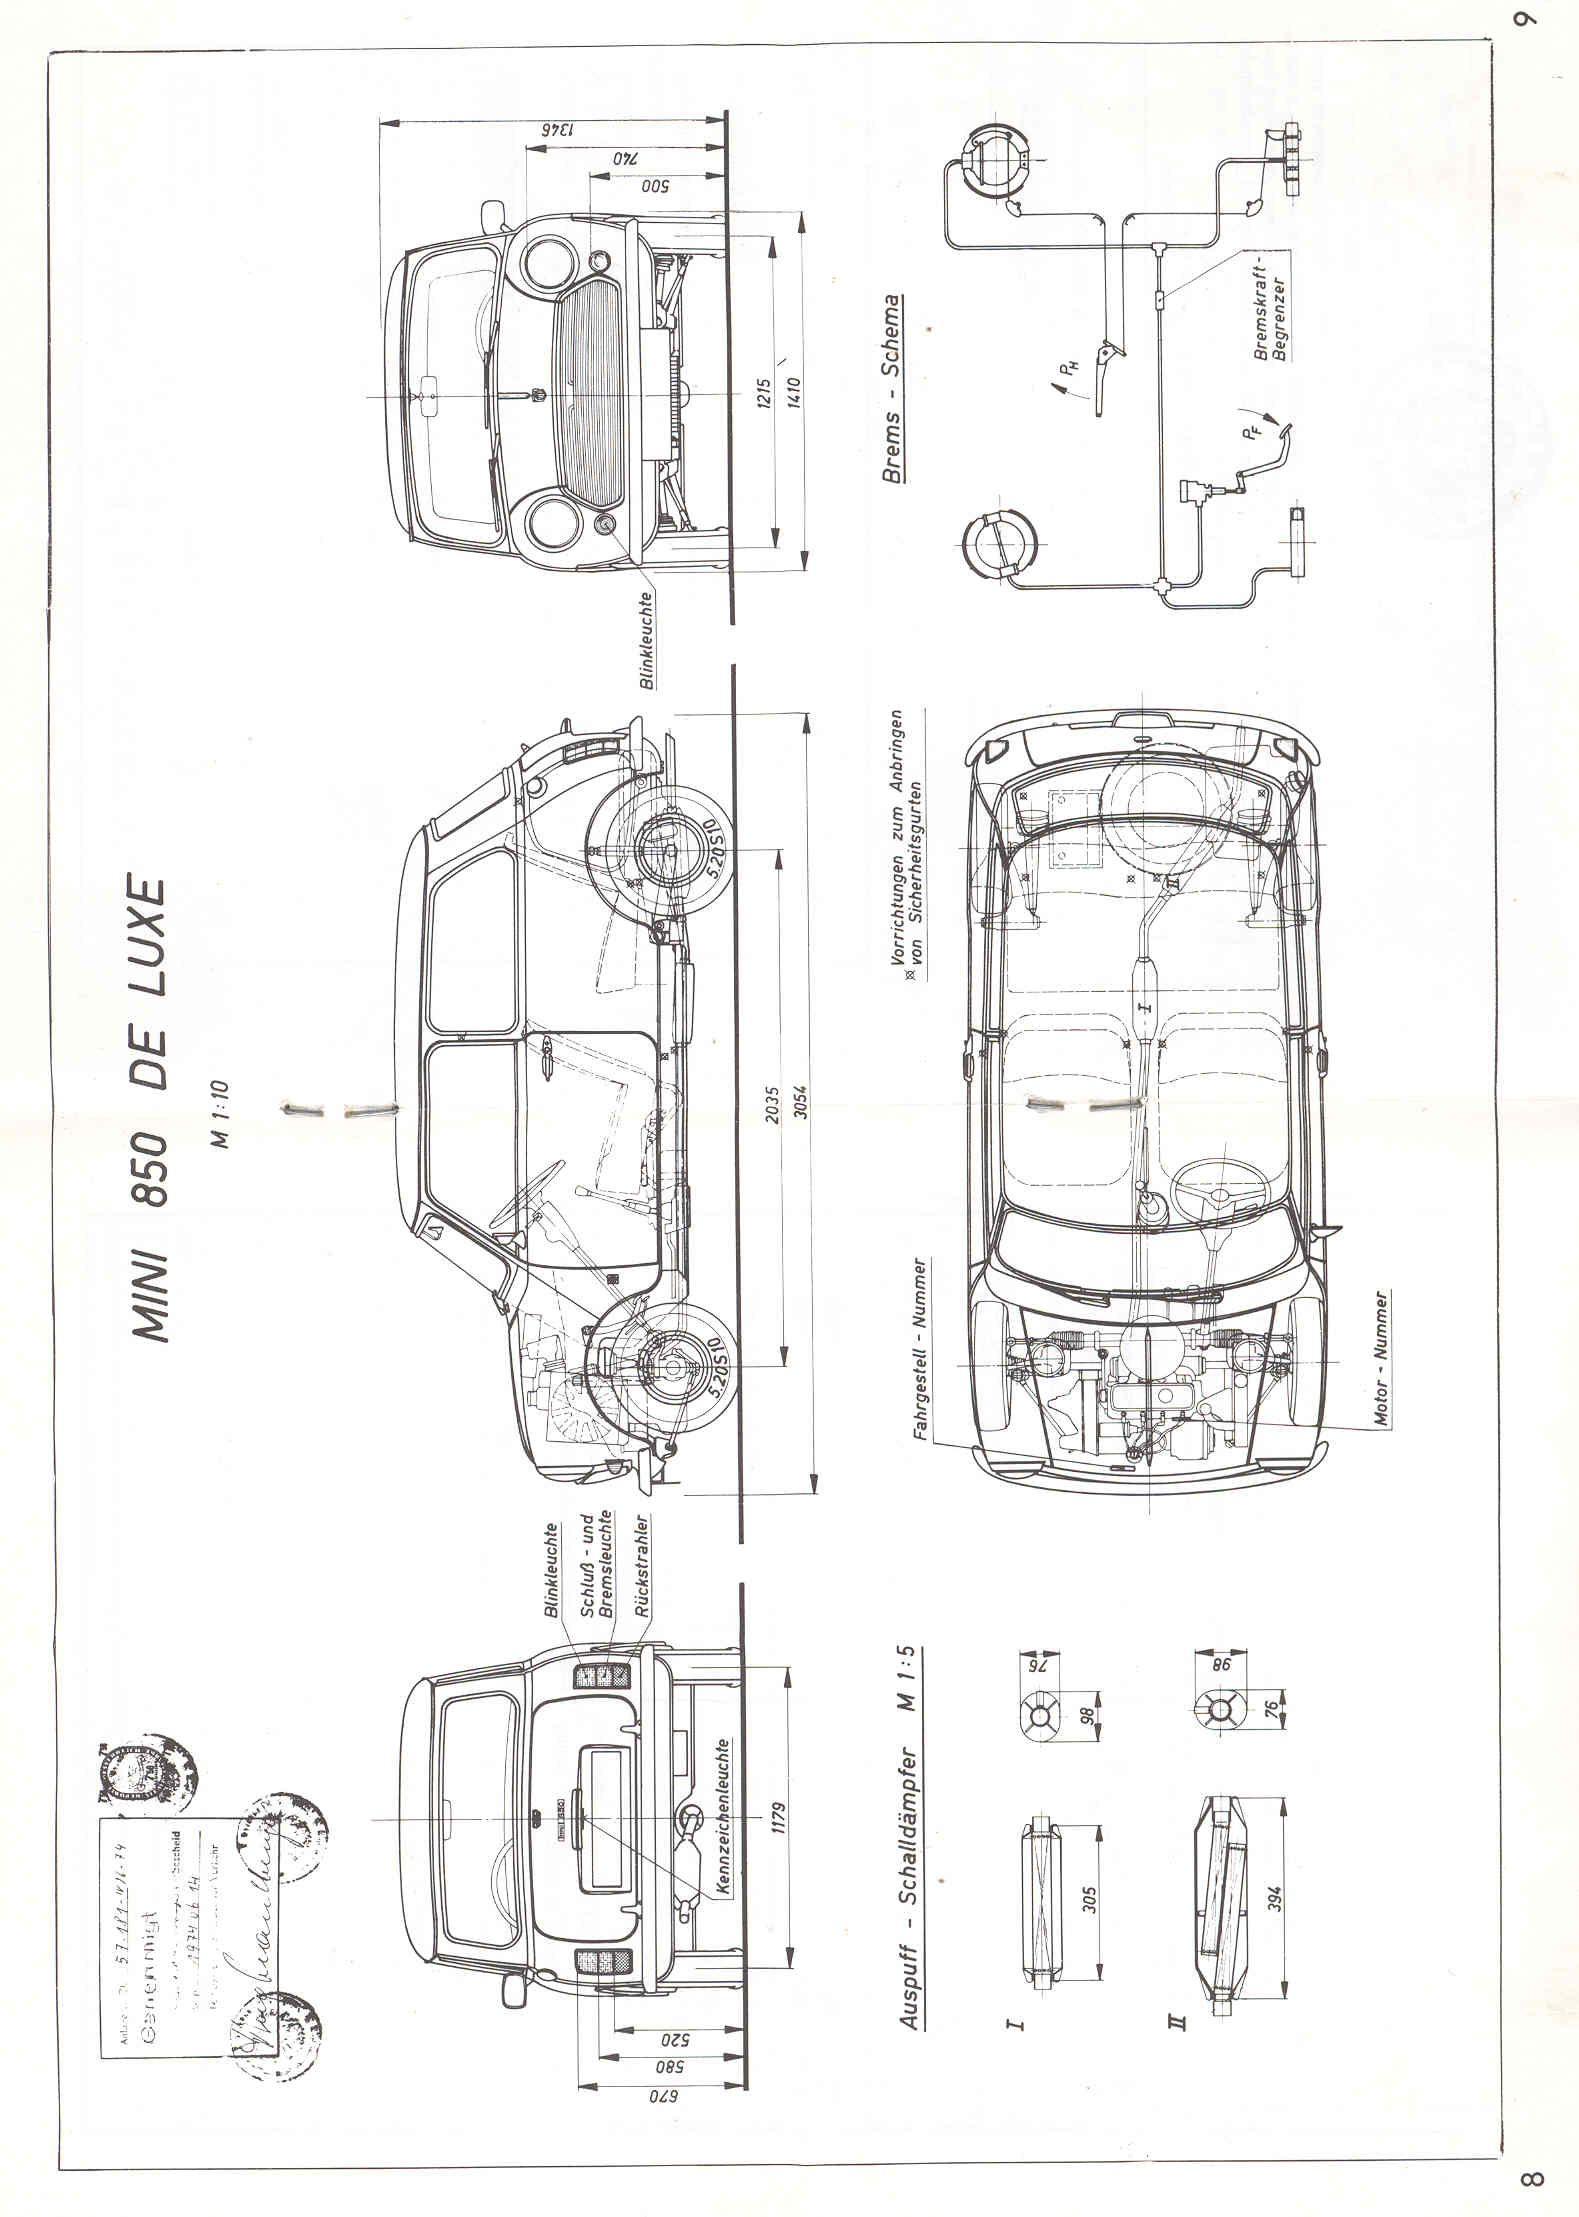 Pin By Julio Afonso On Cars Blueprints